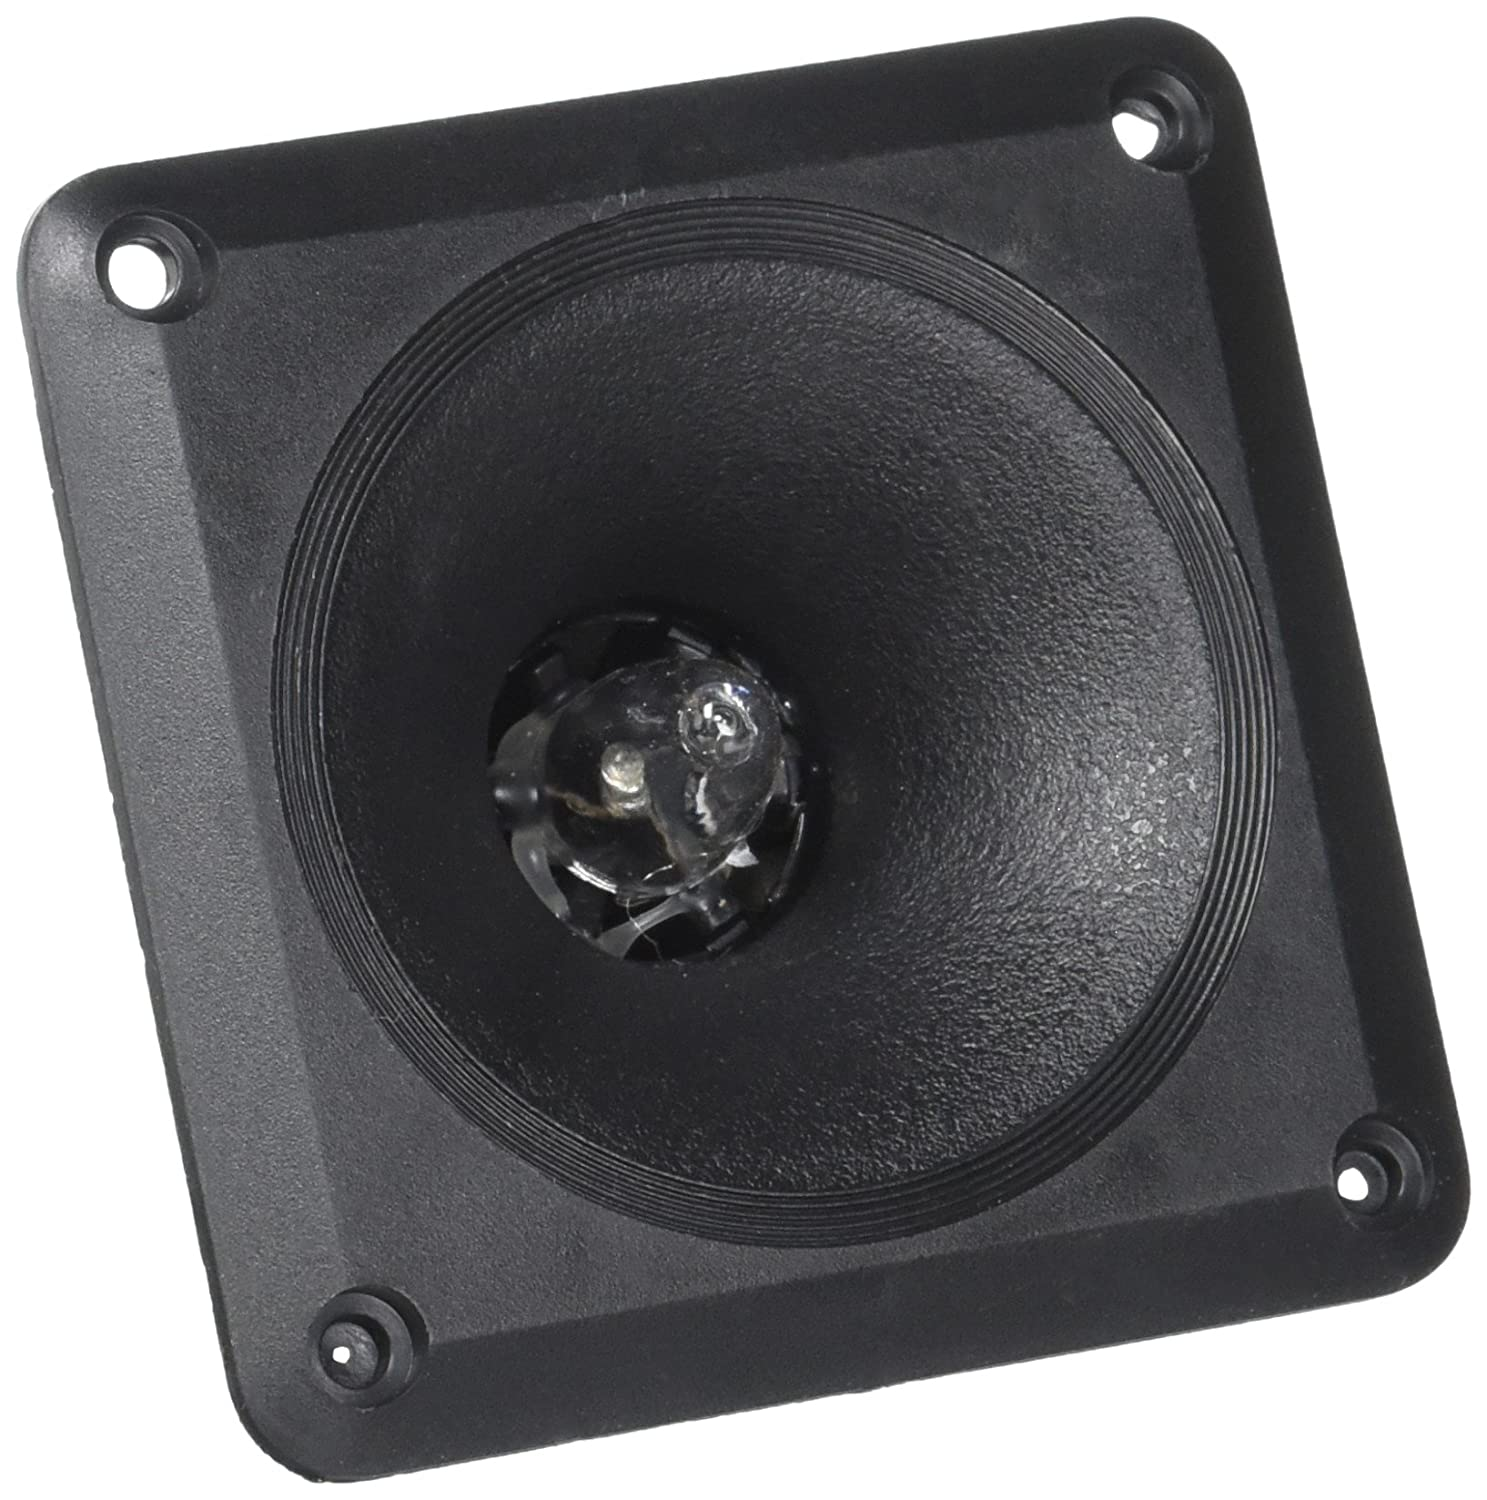 Blast King 73BICE50 3 1/4-Inch Square Tweeter with Illuminated Blue LED Center